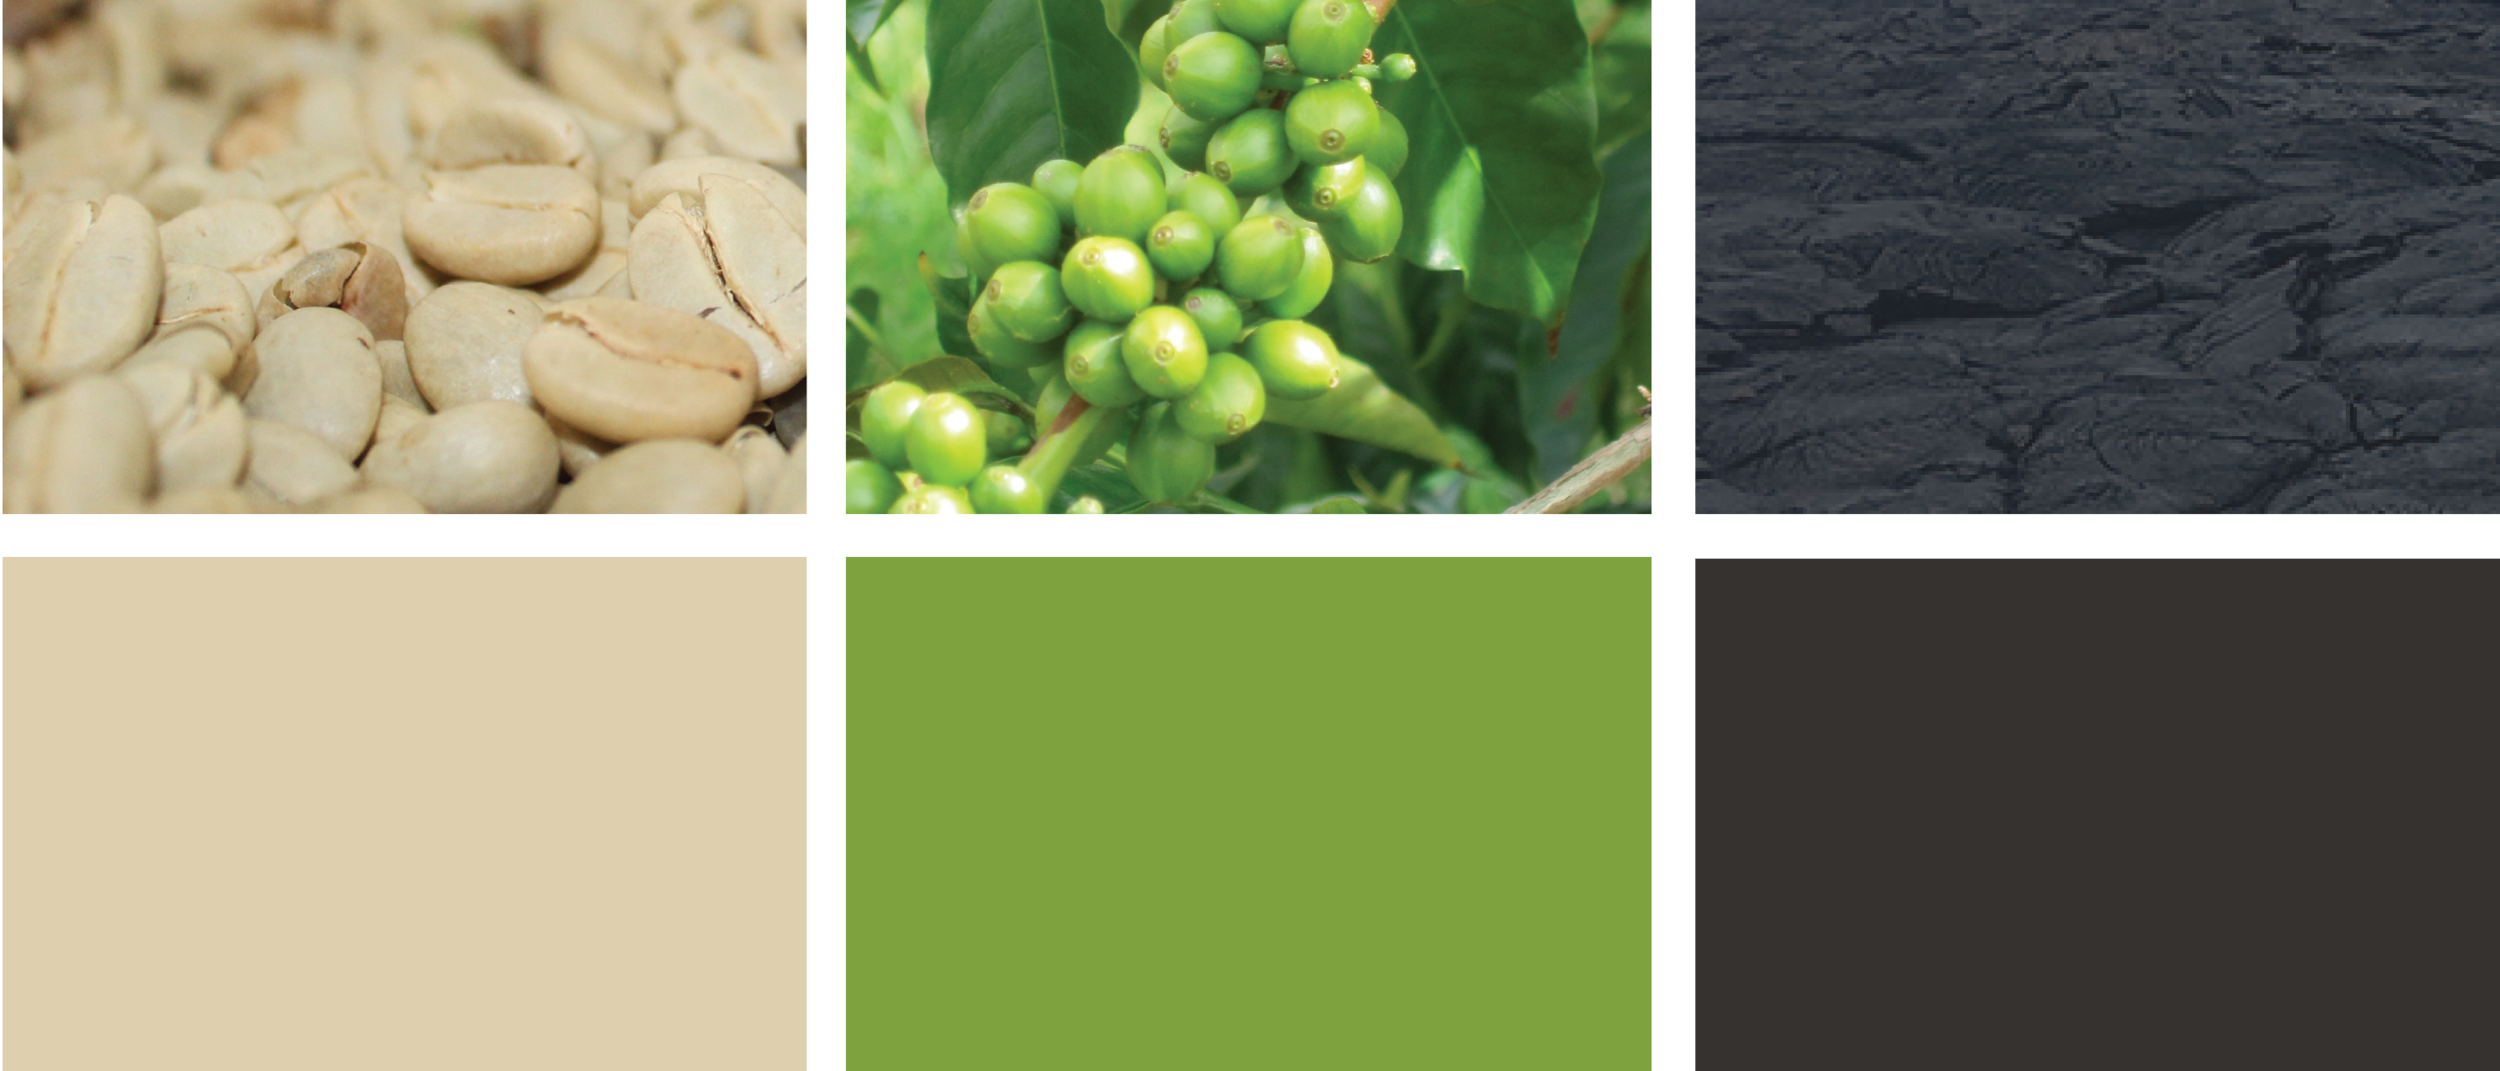 The colors of the new bags were inspired by the Kona Coffee & Tea farm and mill.